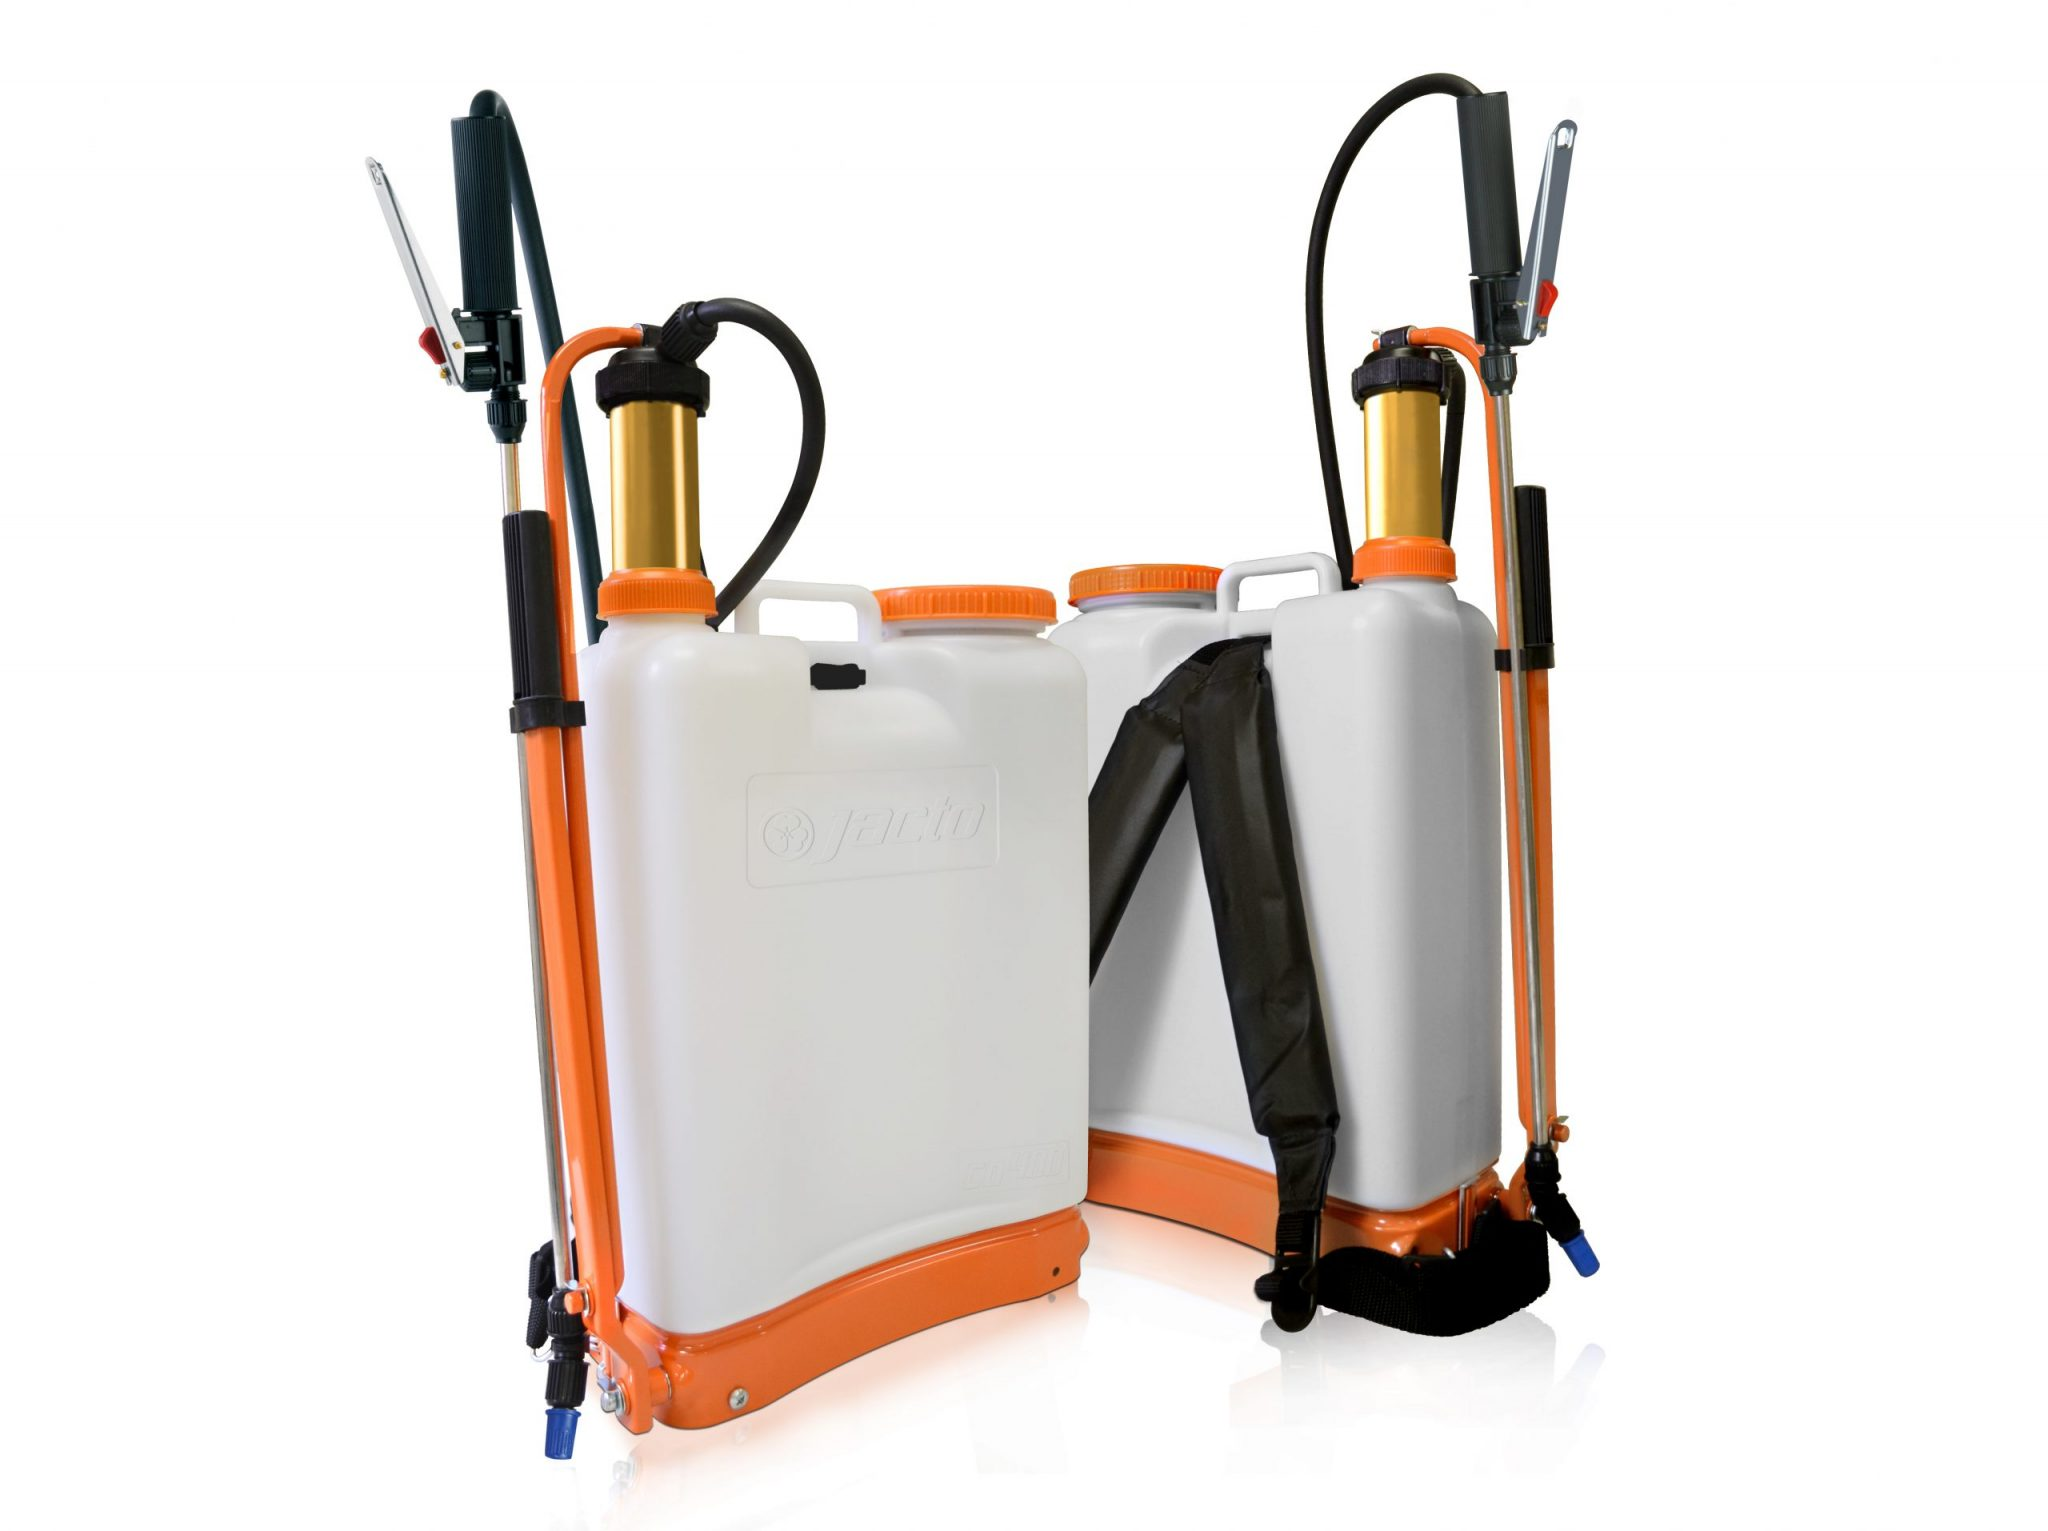 Internal Pump Backpack Sprayer